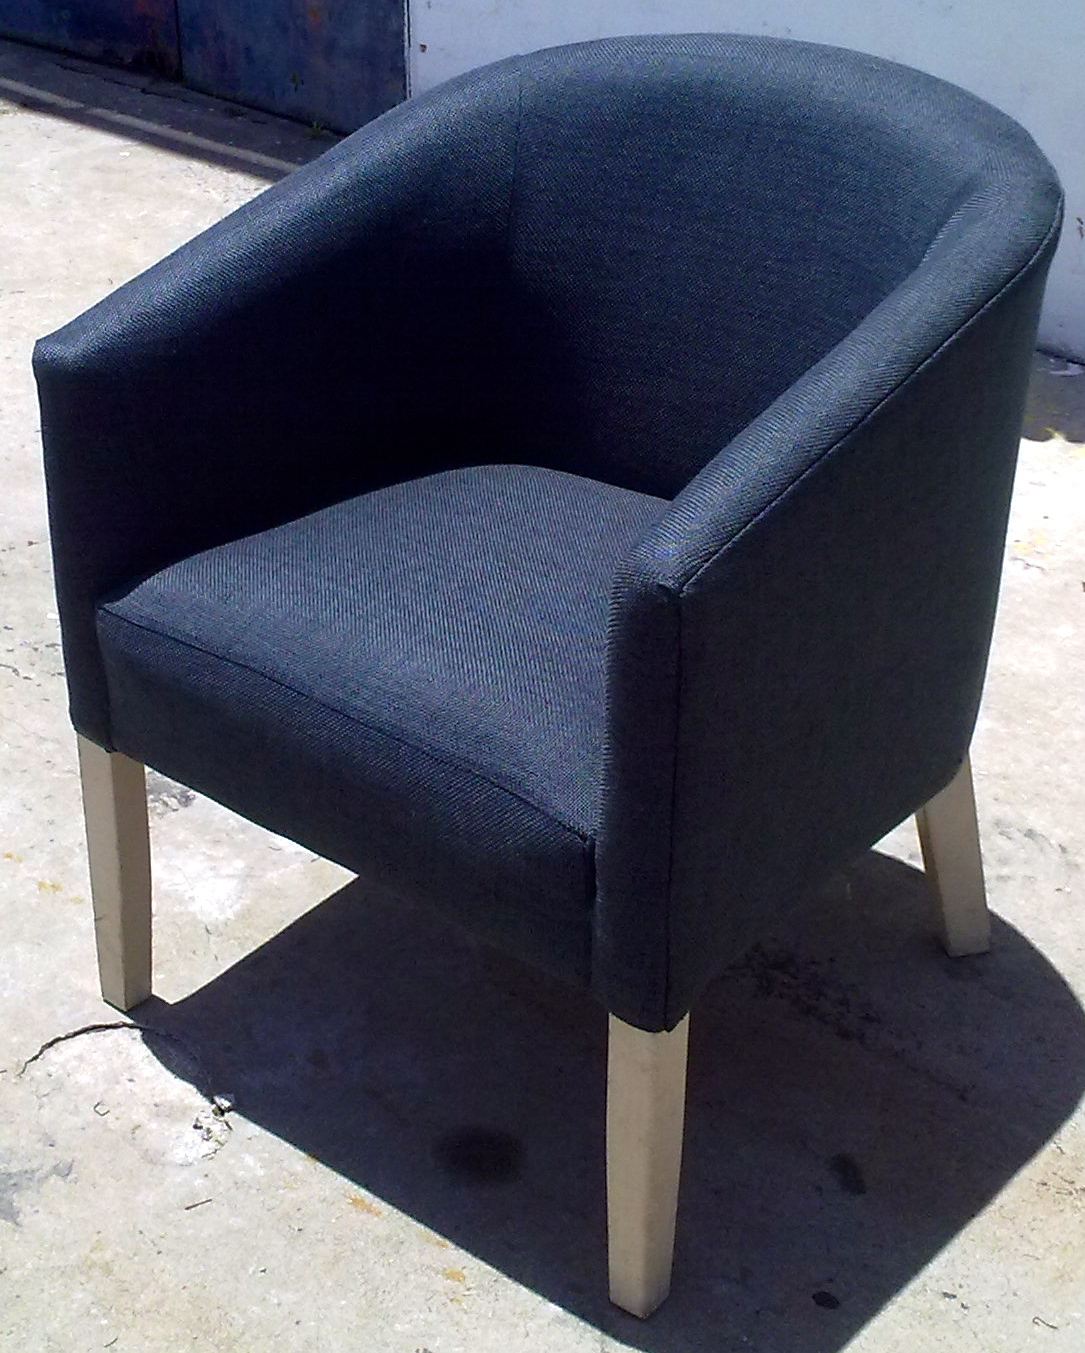 Reupholstering tub chairs upholstery cape town for Recover furniture cape town